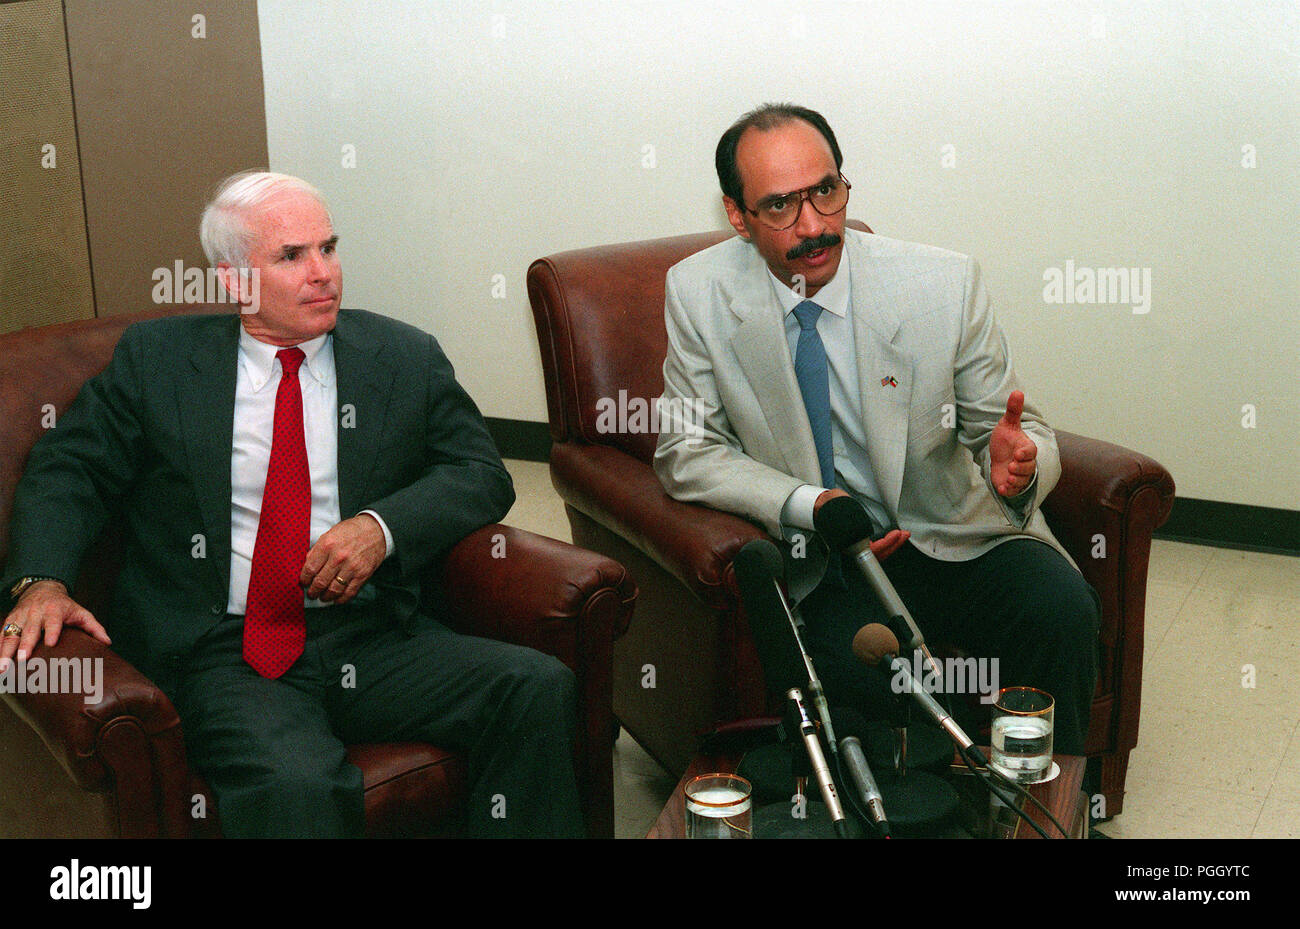 Sheikh Saud Nasir Al Sabah, third from right, Kuwait's ambassador to the U.S., answers a question during a press conference as Sen. John McCain of Arizona listens.   Al Sabah has come to Davis-Monthan to thank the base's personnel for their role in Operation Desert Shield and Operation Desert Storm, which liberated Kuwait from its Iraqi invaders.  Flanking Al Sabah and McCain are Col. Joe Greene, left, and Col. Glyn Burleson, right. - Stock Image